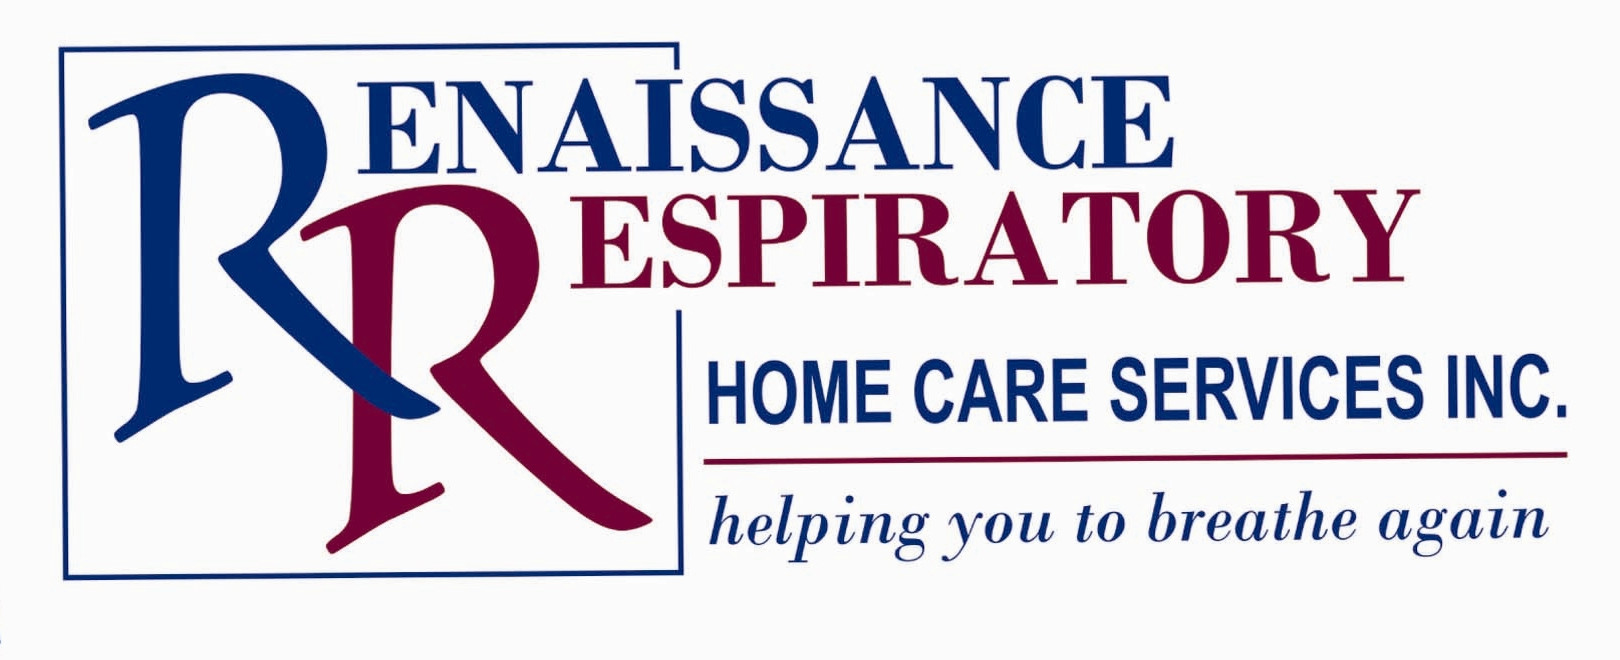 Renaissance Respiratory – Helping you breathe easier